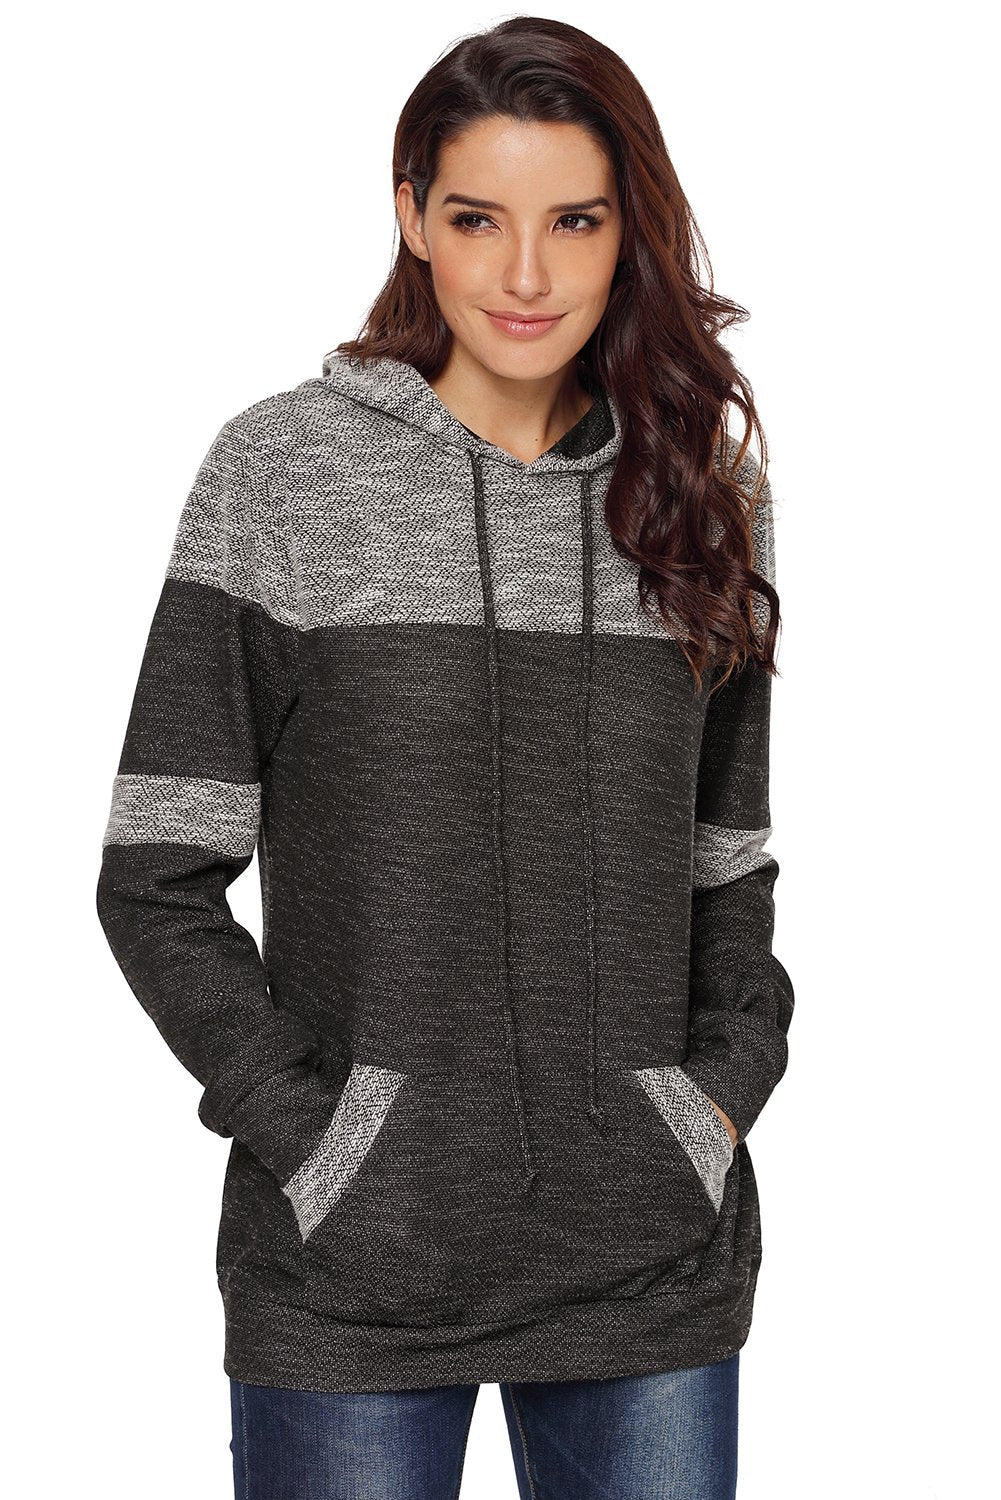 Stylish Black Patchwork Hoodie with Pockets-Outerwear, Sweatshirts & Hoodies-Azura Exchange